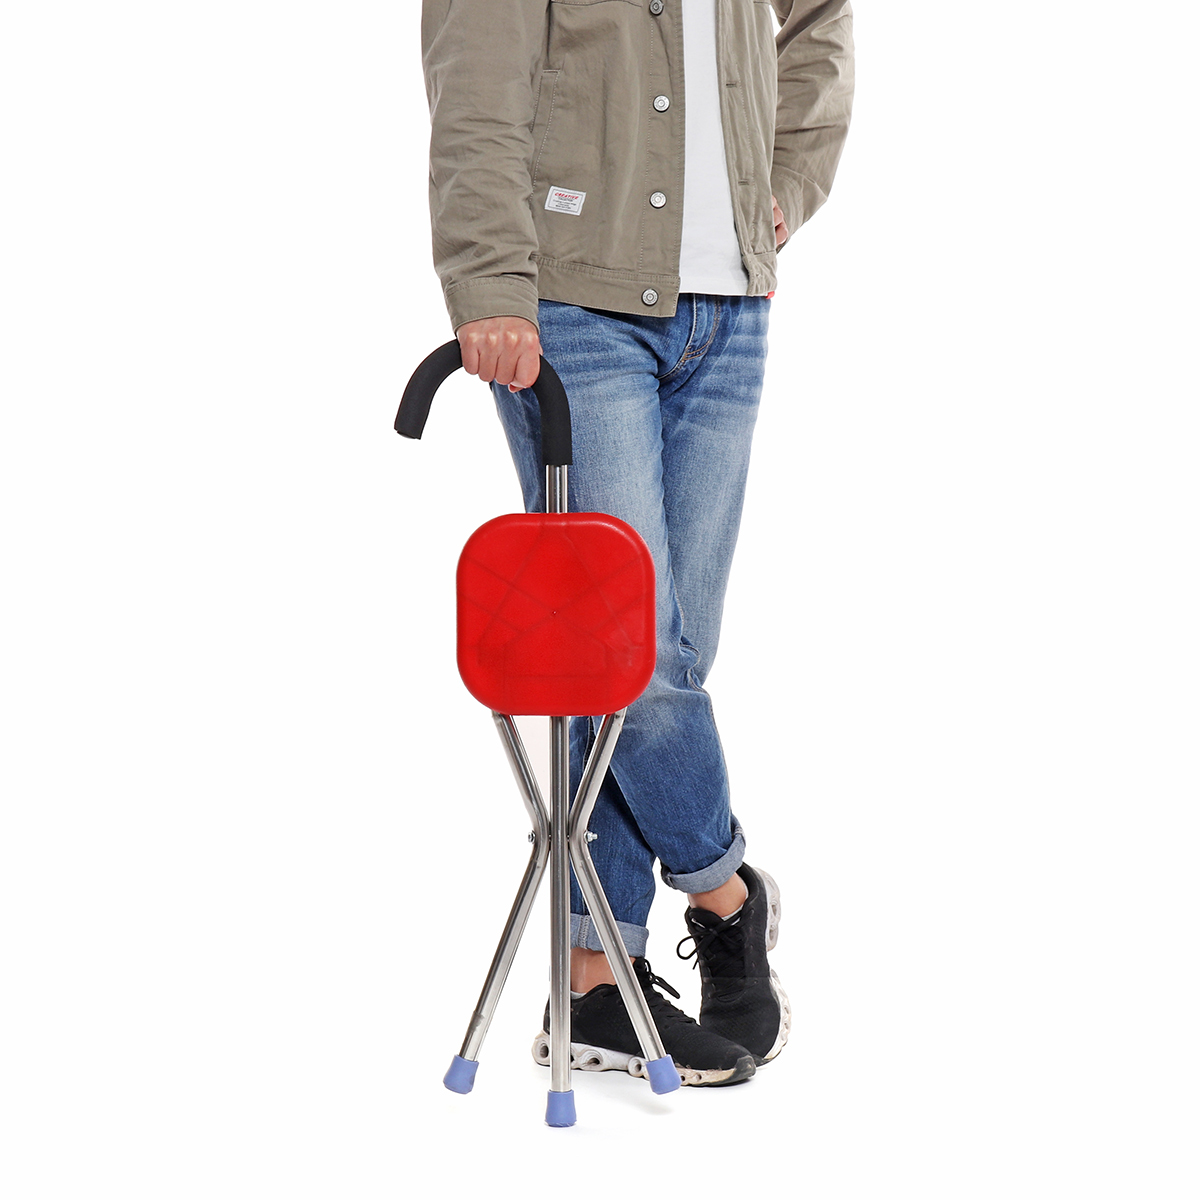 Foldable Elderly Care Walking Cane Stick 2 in 1 Chair Four djustable Cane Chair Stool Seat Portable CrutchLegs Folding Chair